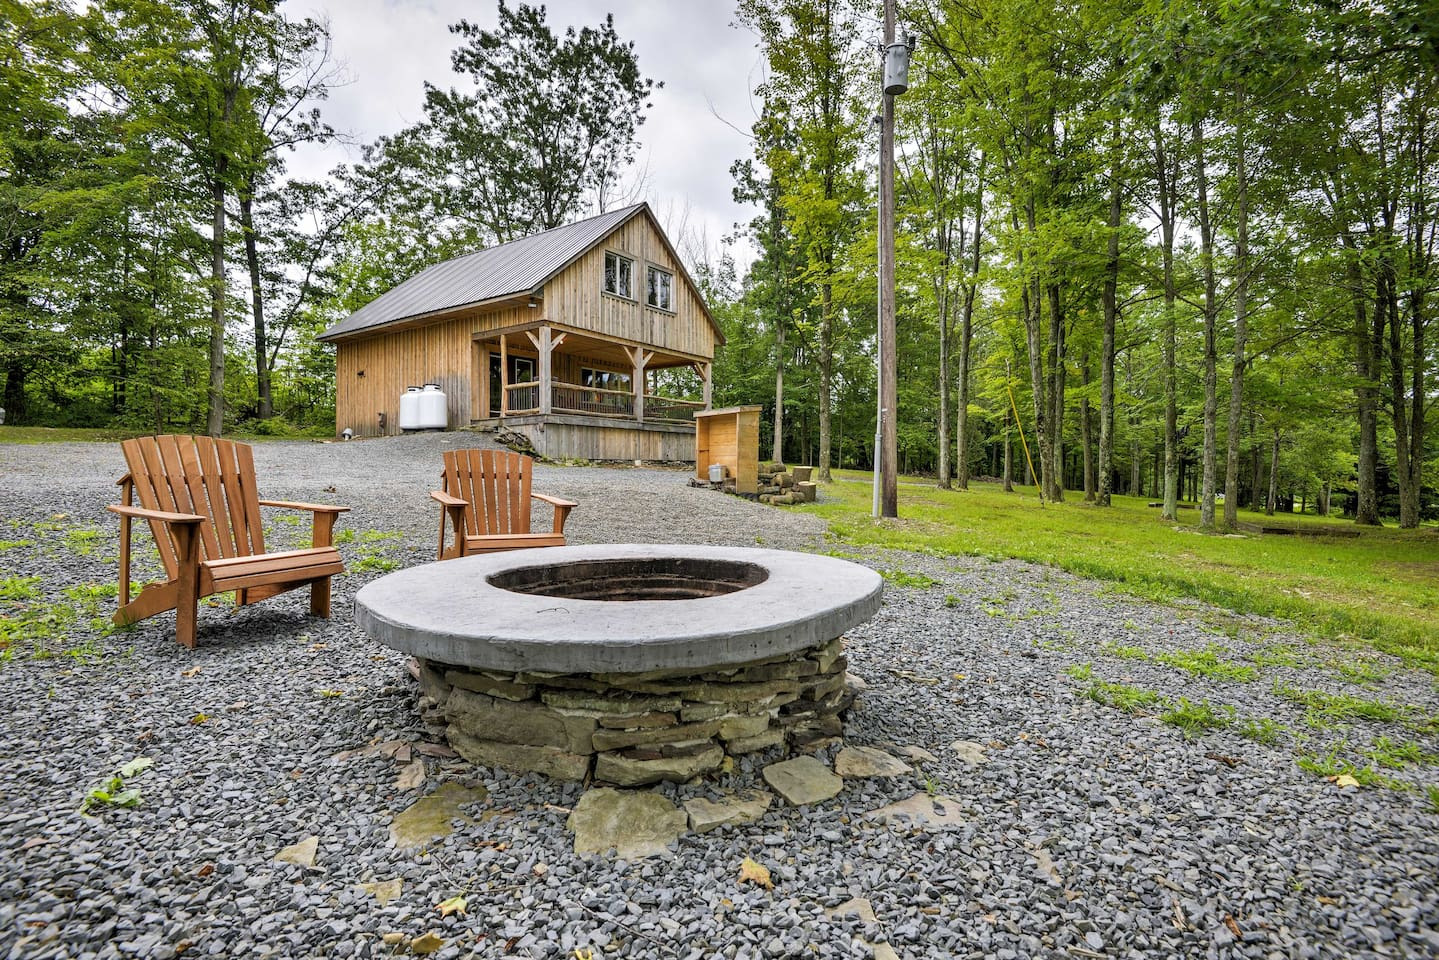 Tell campfire stories and roast marshmallows by the fire pit during your stay at this 2-bedroom, 1.5-bathroom vacation rental cabin in Ulster!